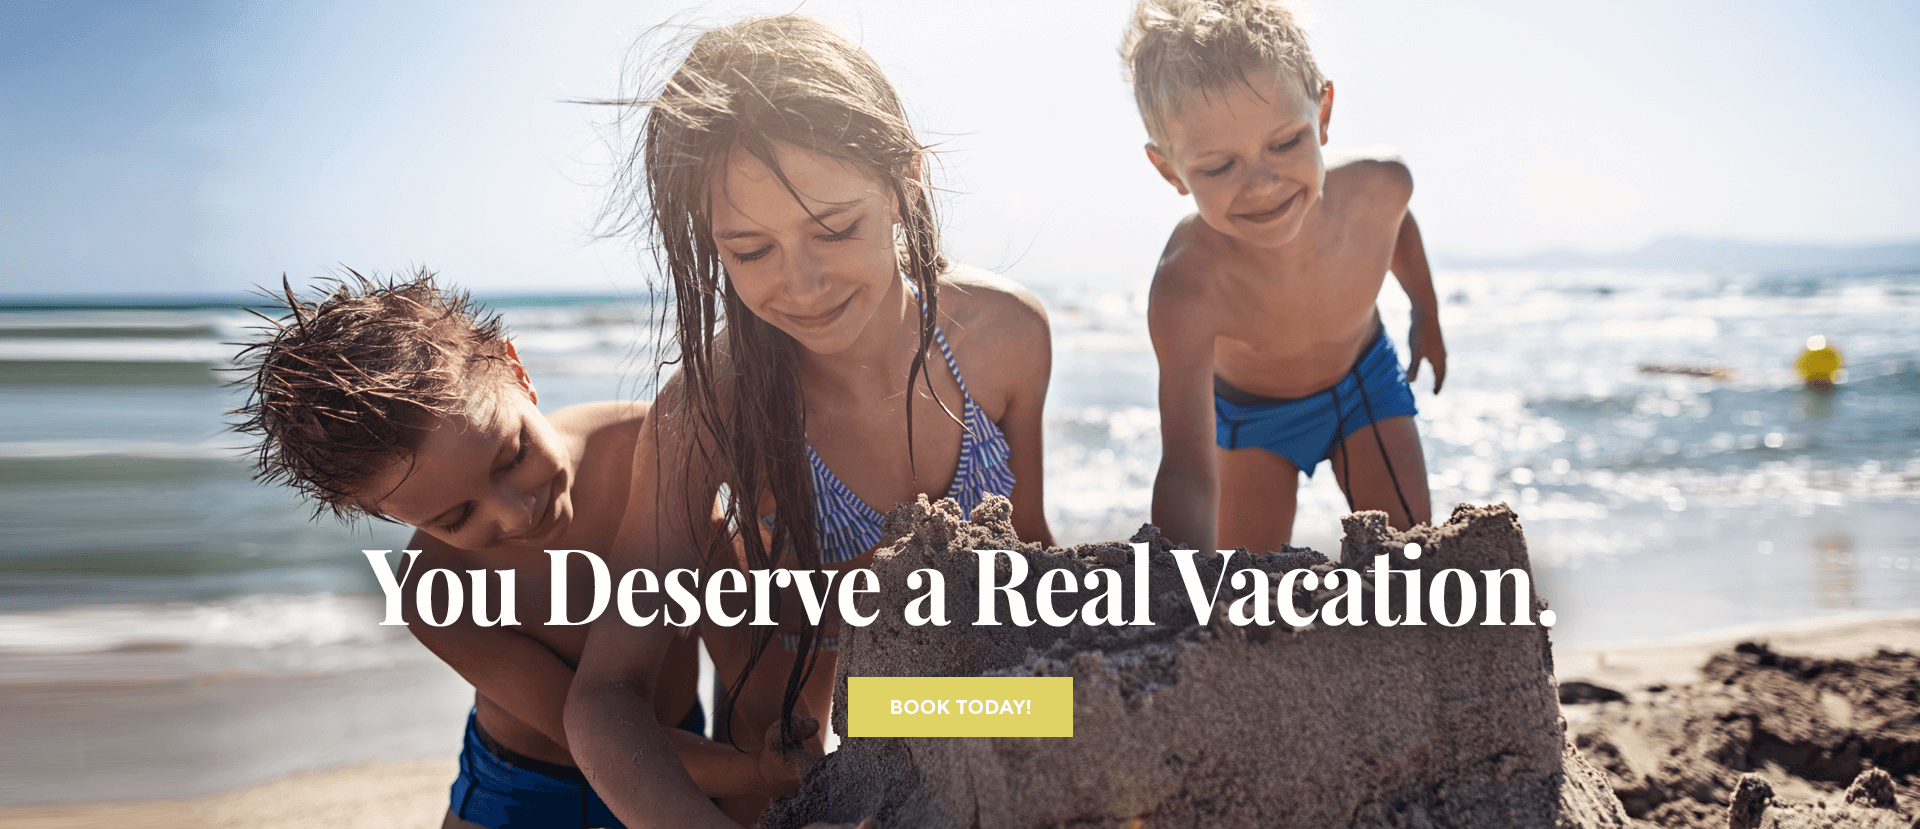 You Deserve a Real Vacation